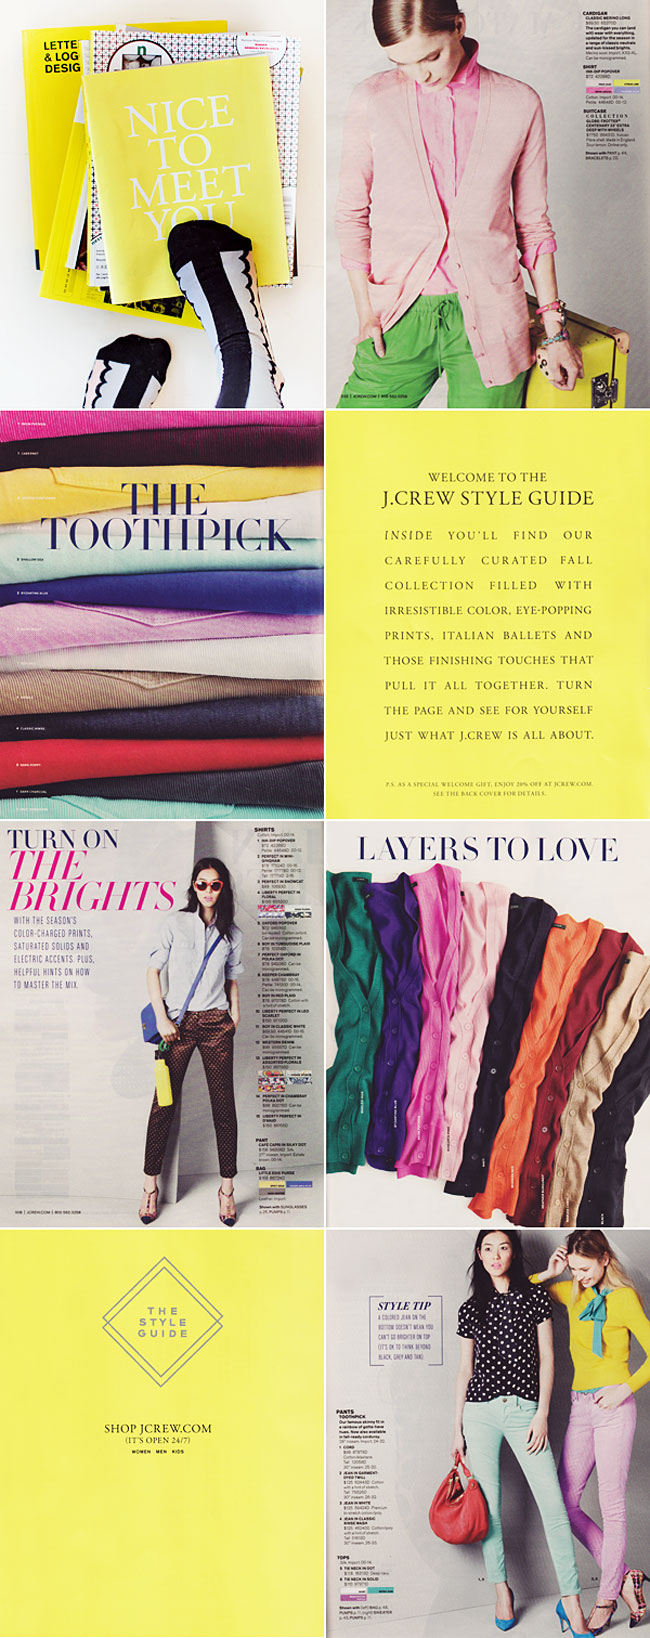 Typofiles J Crew Style Guide